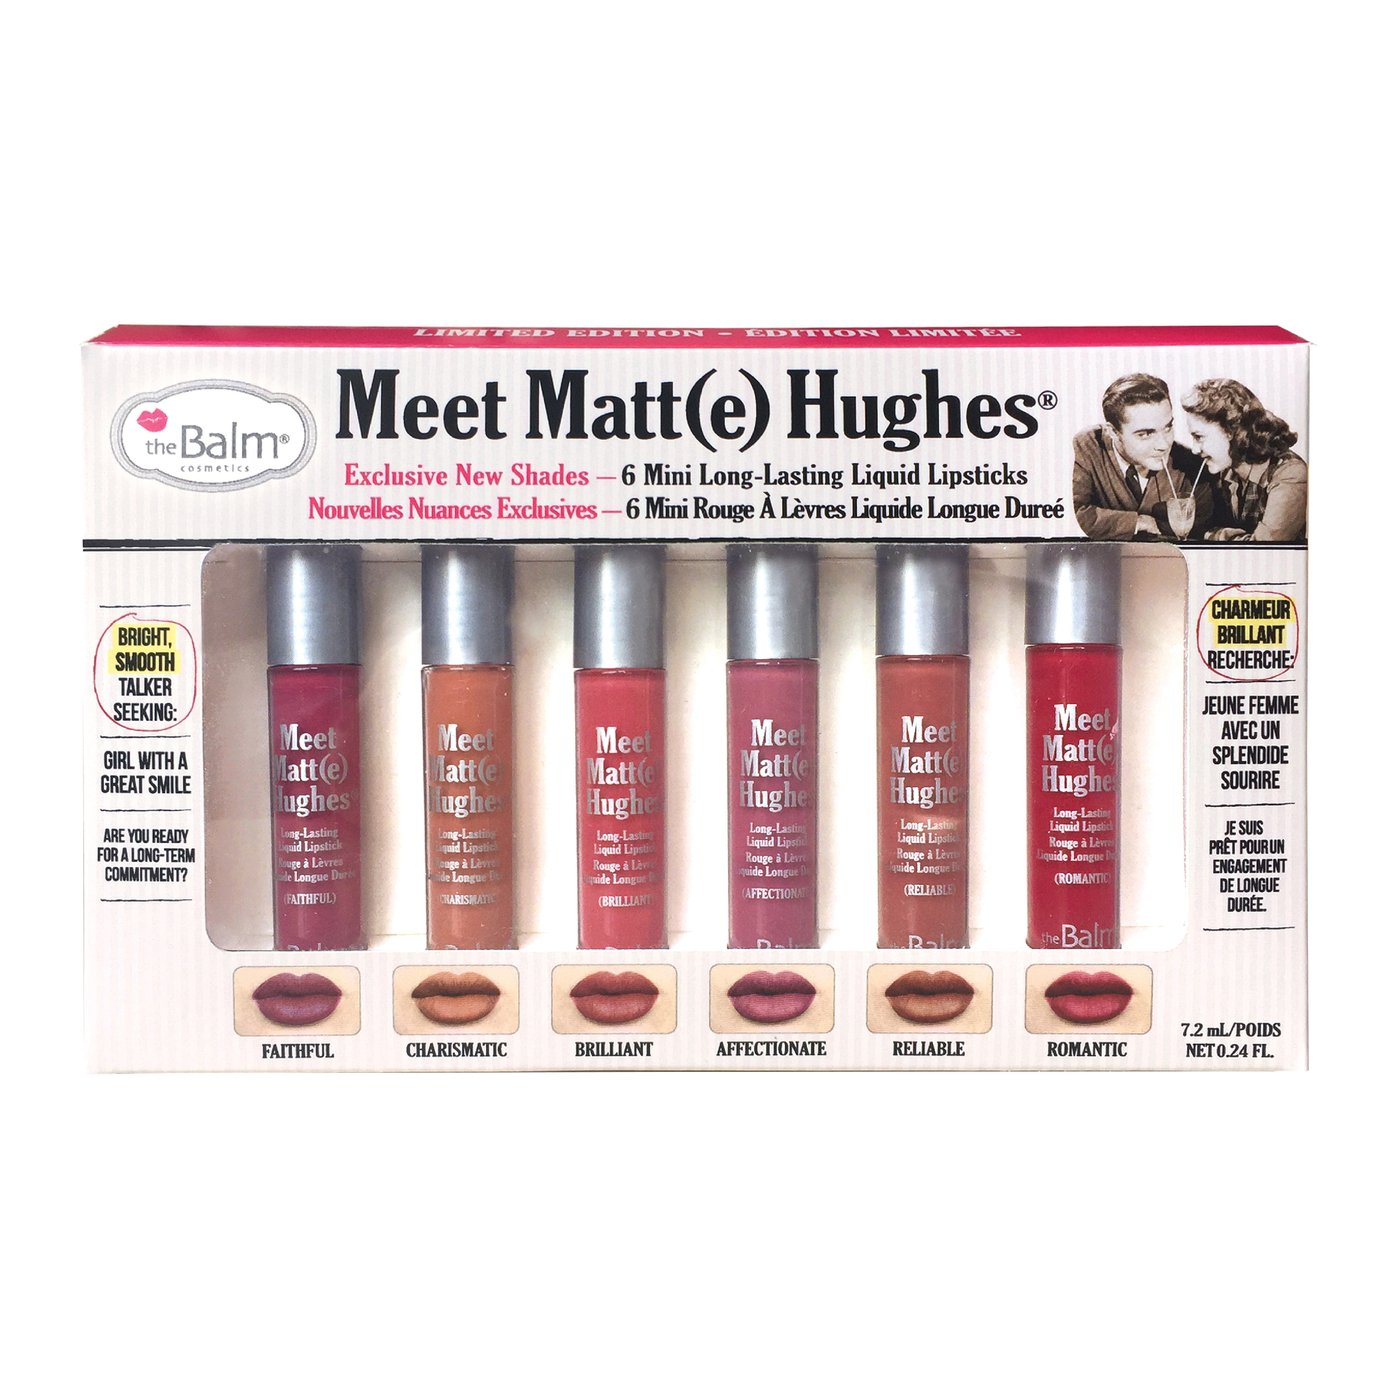 theBalm Meet Matte Hughes Lipsticks Kit - Vol 2